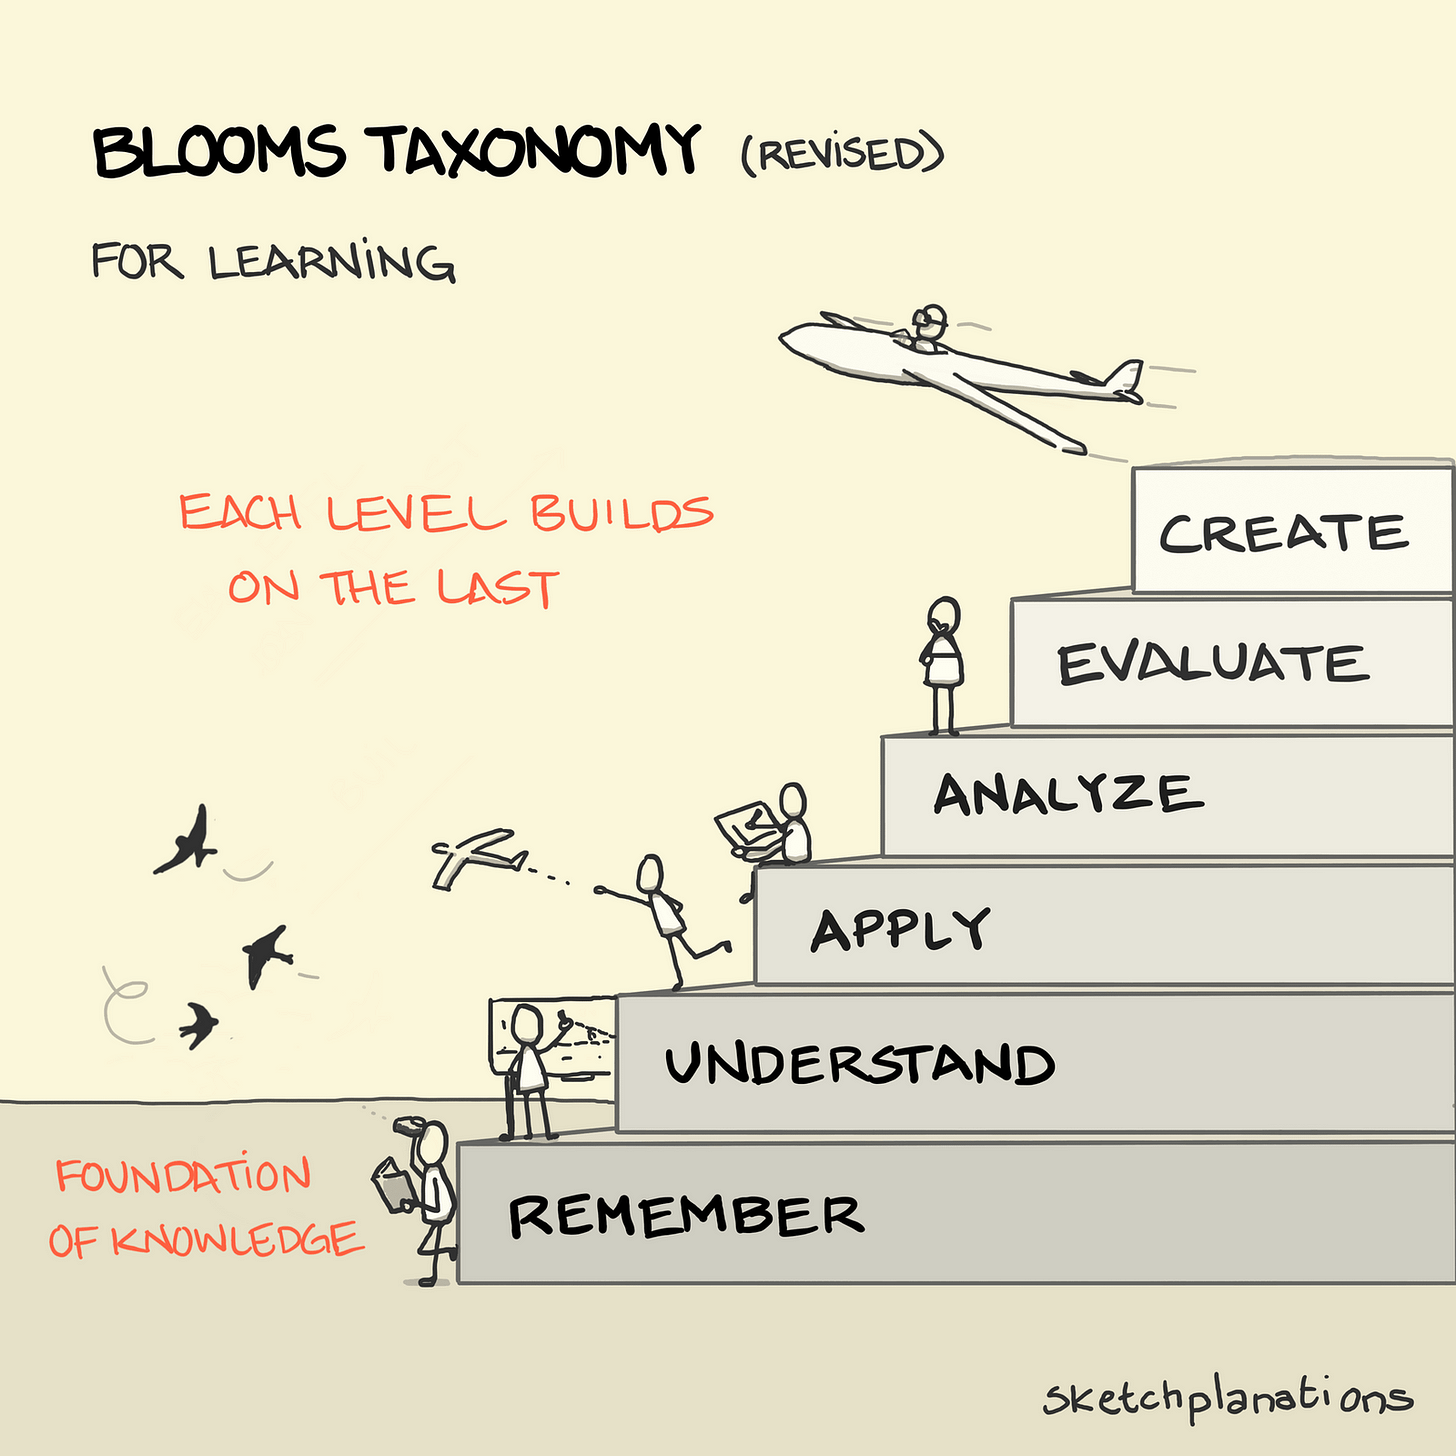 Bloom's Taxonomy - Sketchplanations